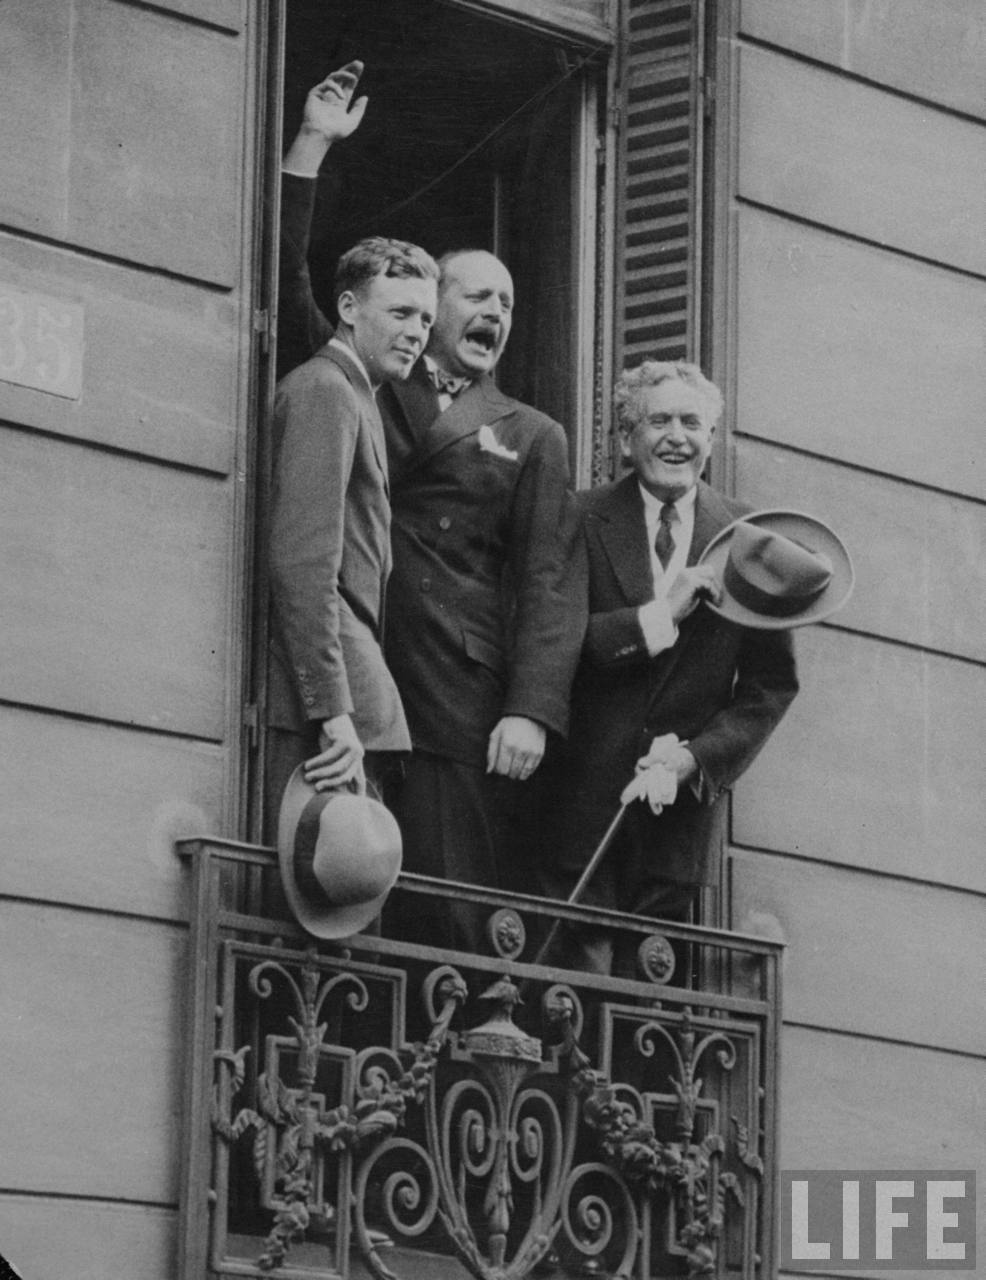 1927-05-23 Lindbergh, British aviator Sir Alan Cobham and American Ambassador Myron T. Herrick, at window of the French Aero Club where Lindbergh received its gold medal. LIFE magazine photo.